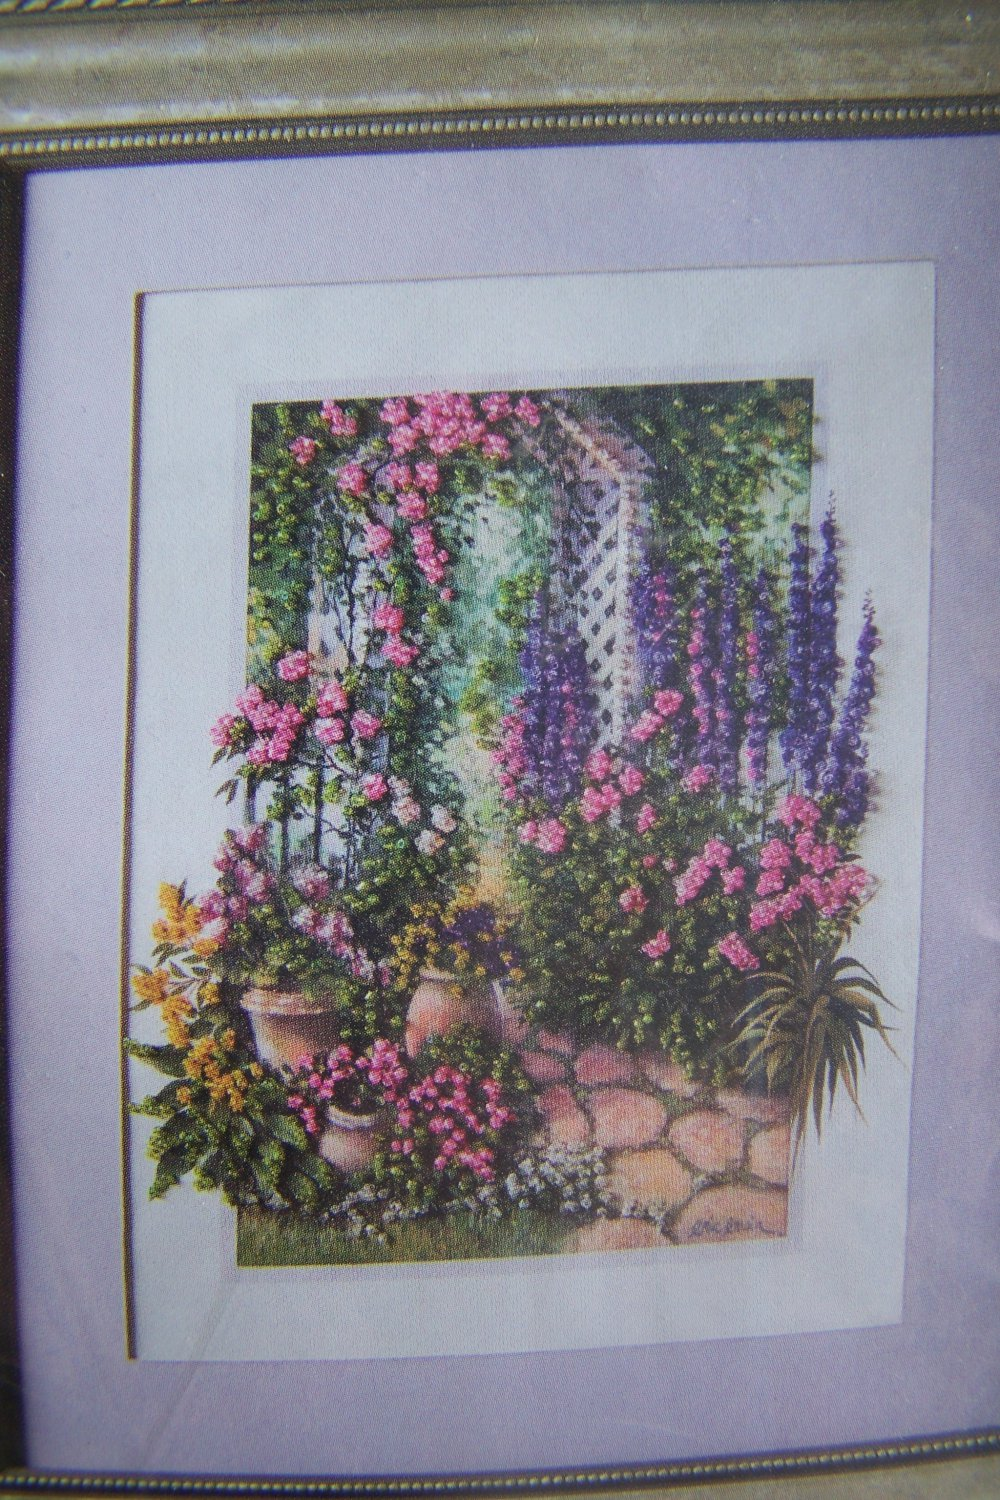 New simply beads craft kit of the month club garden for Craft of the month club